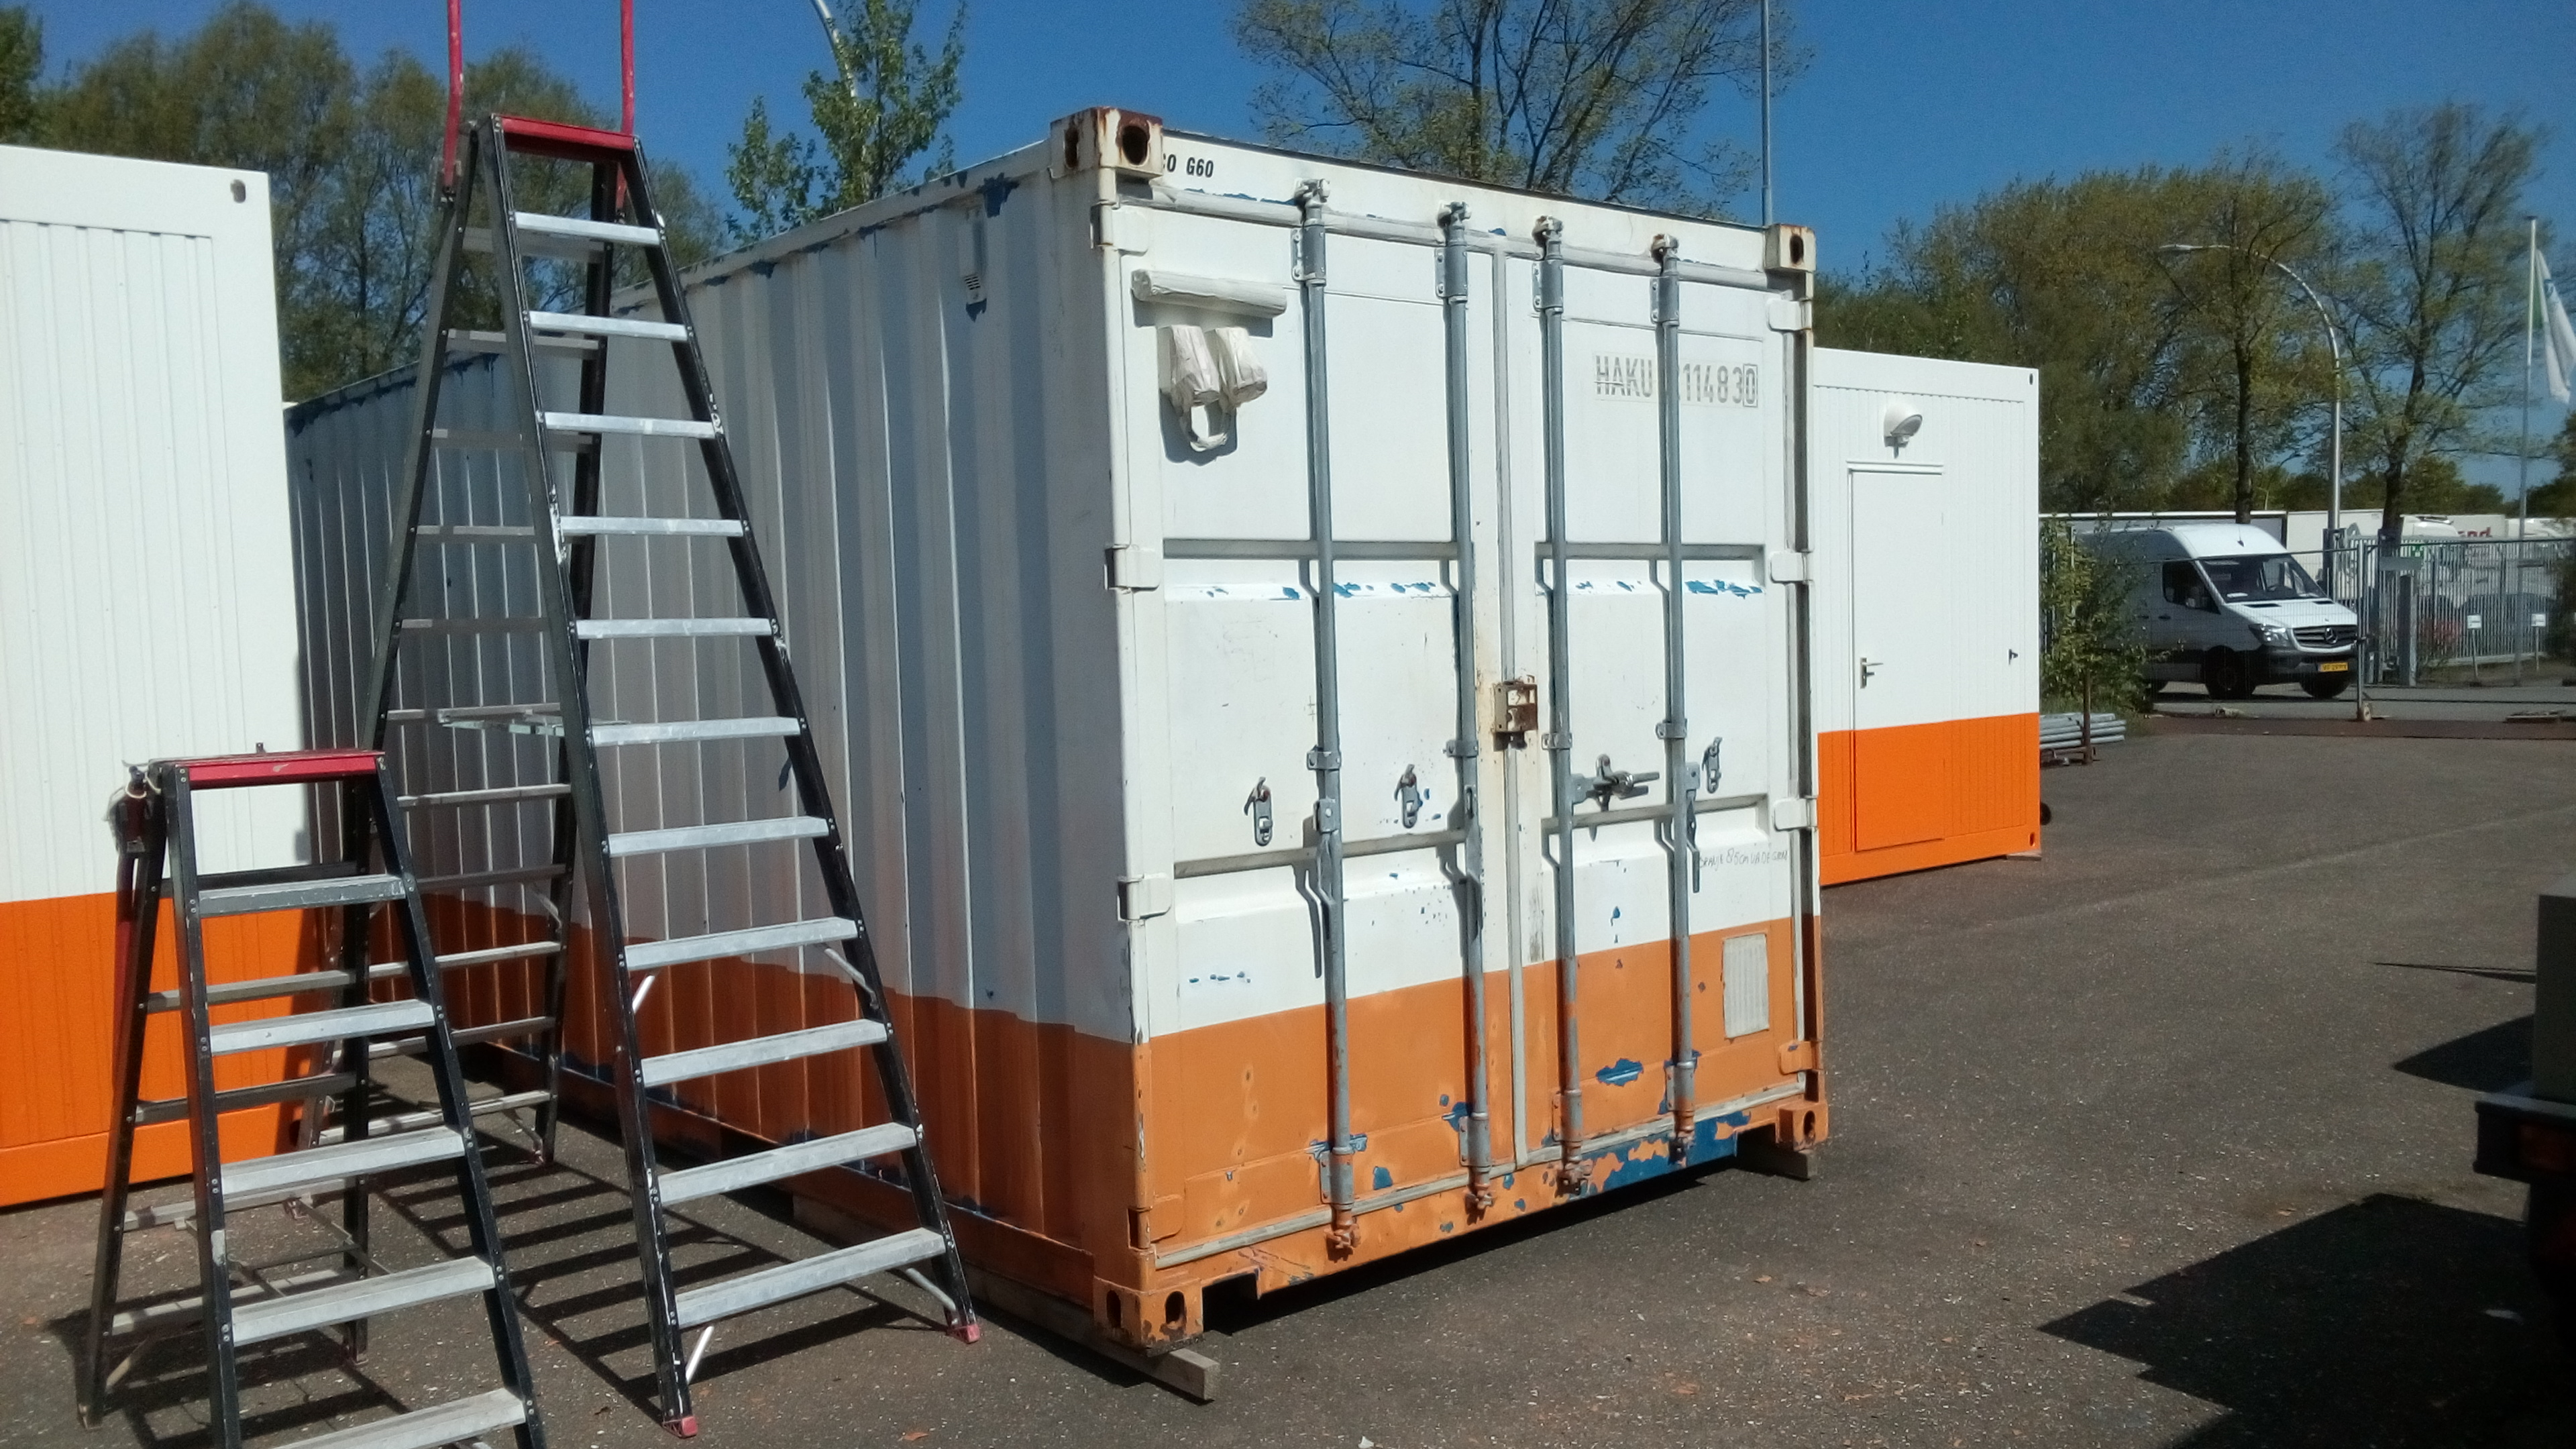 Container ouwehand1